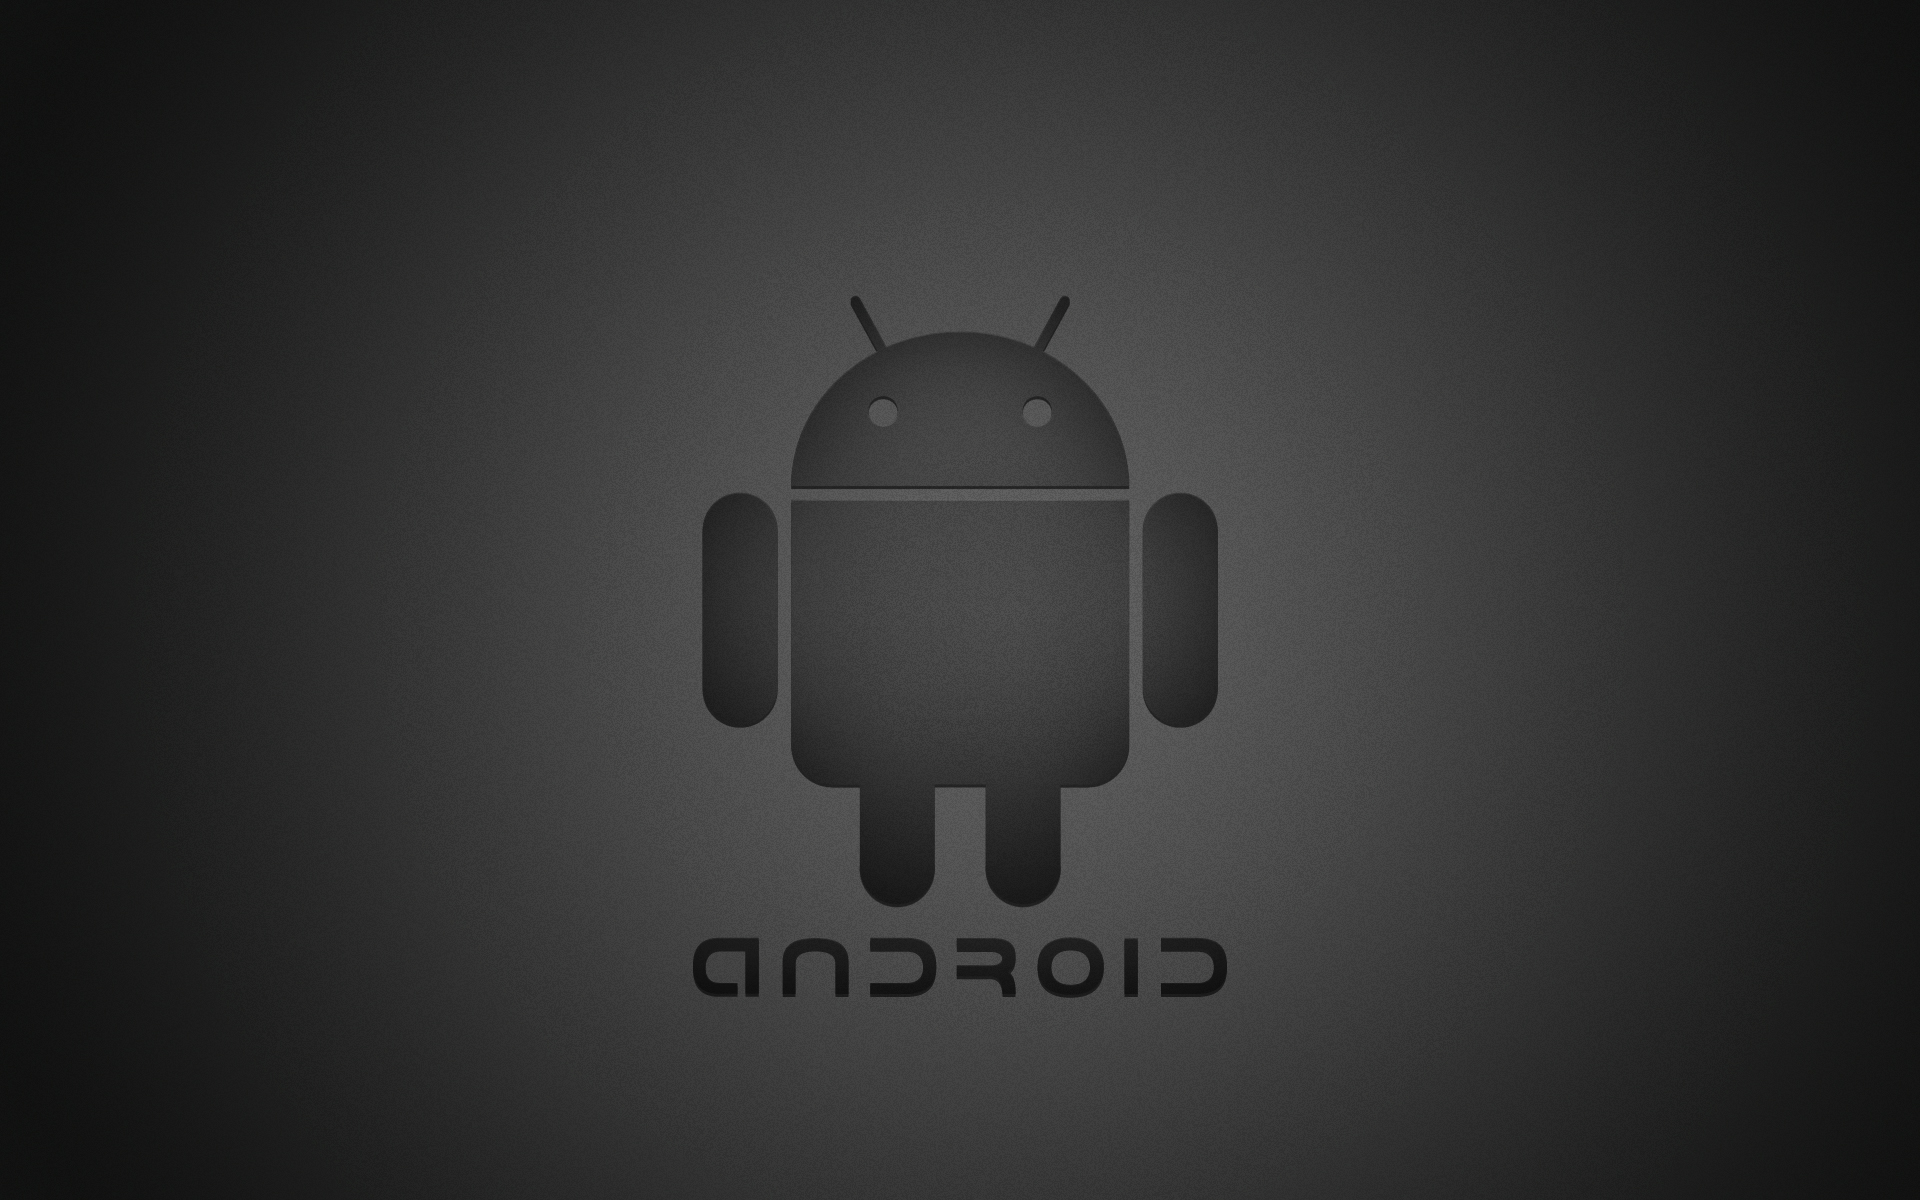 Android-Backgrounds-HD-Wallpapers-For-Android